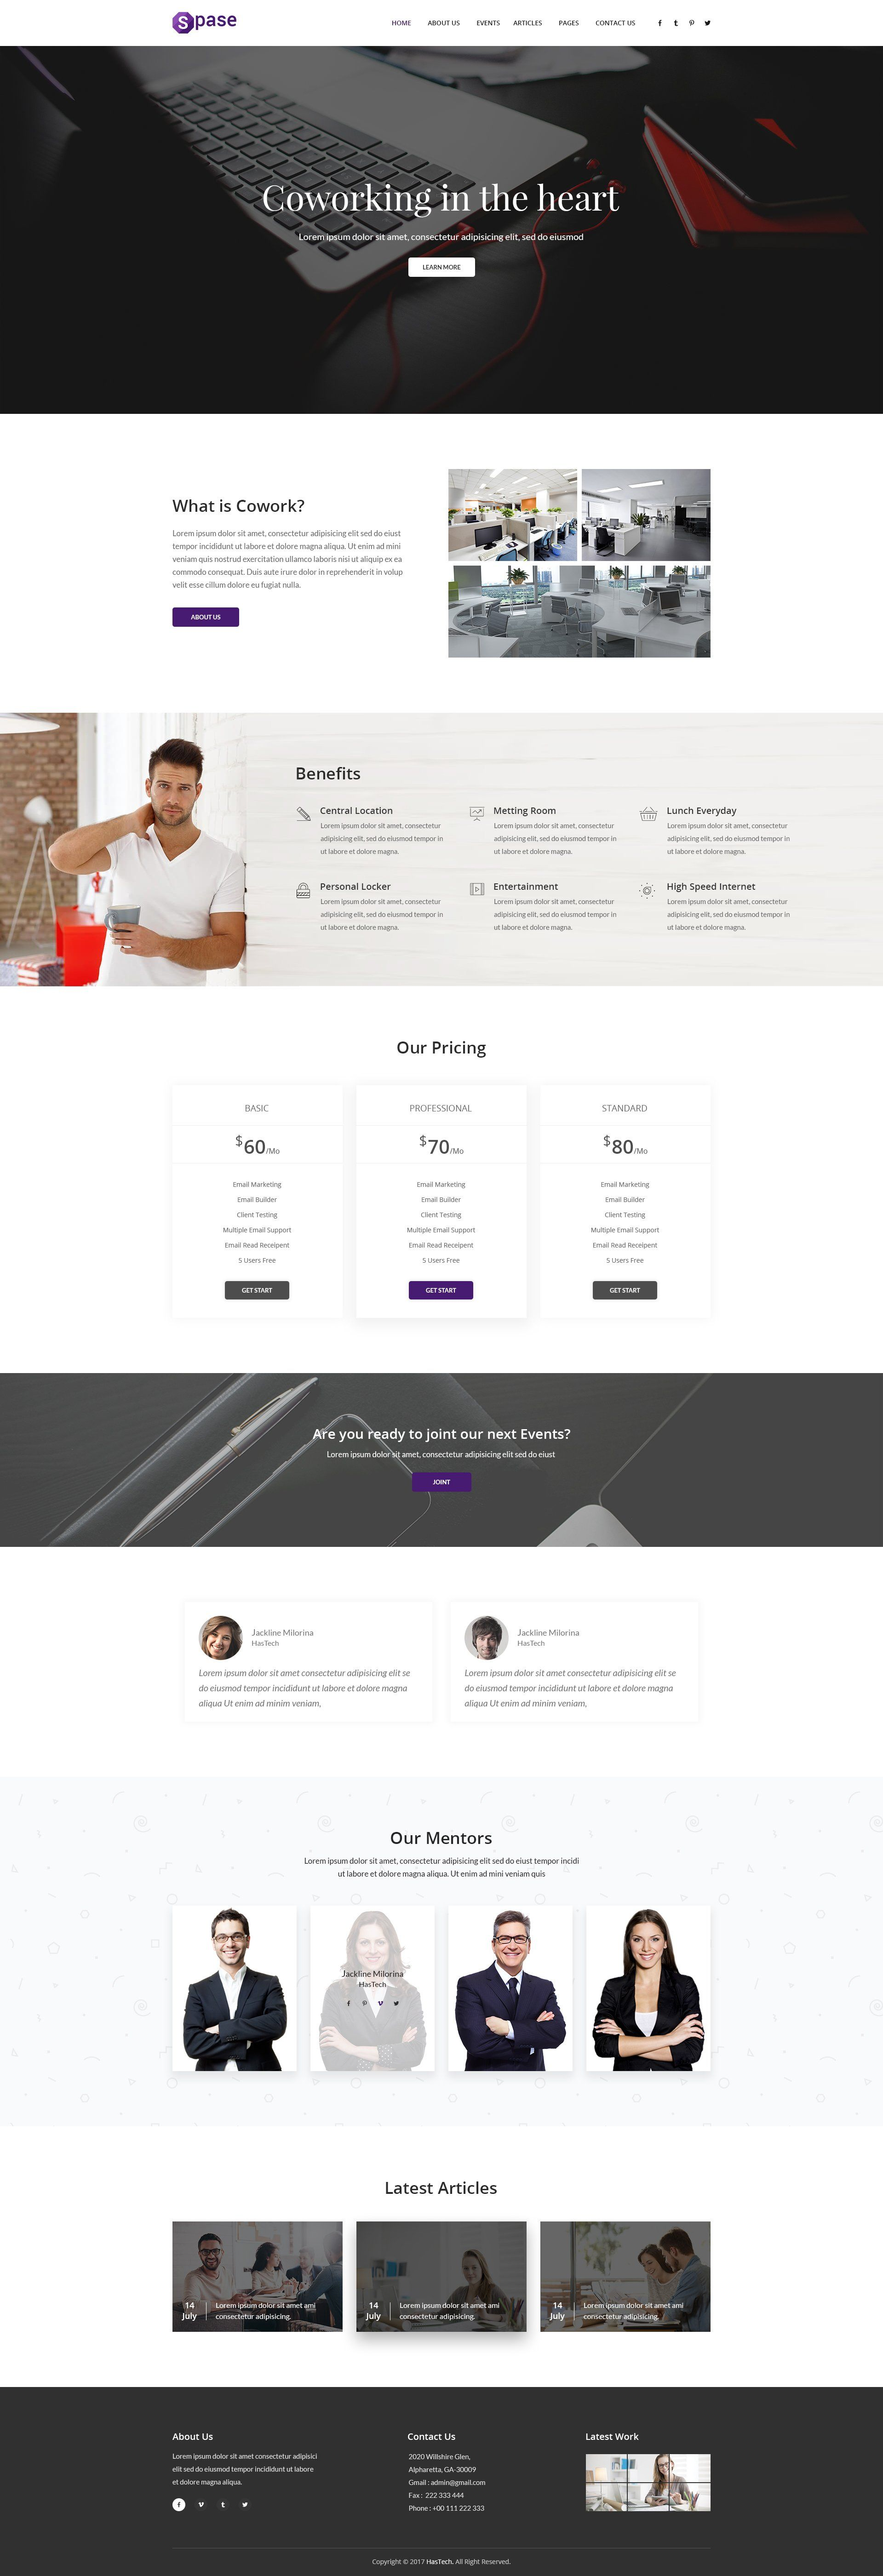 Spase Coworking Html Template Html Templates Coworking Templates